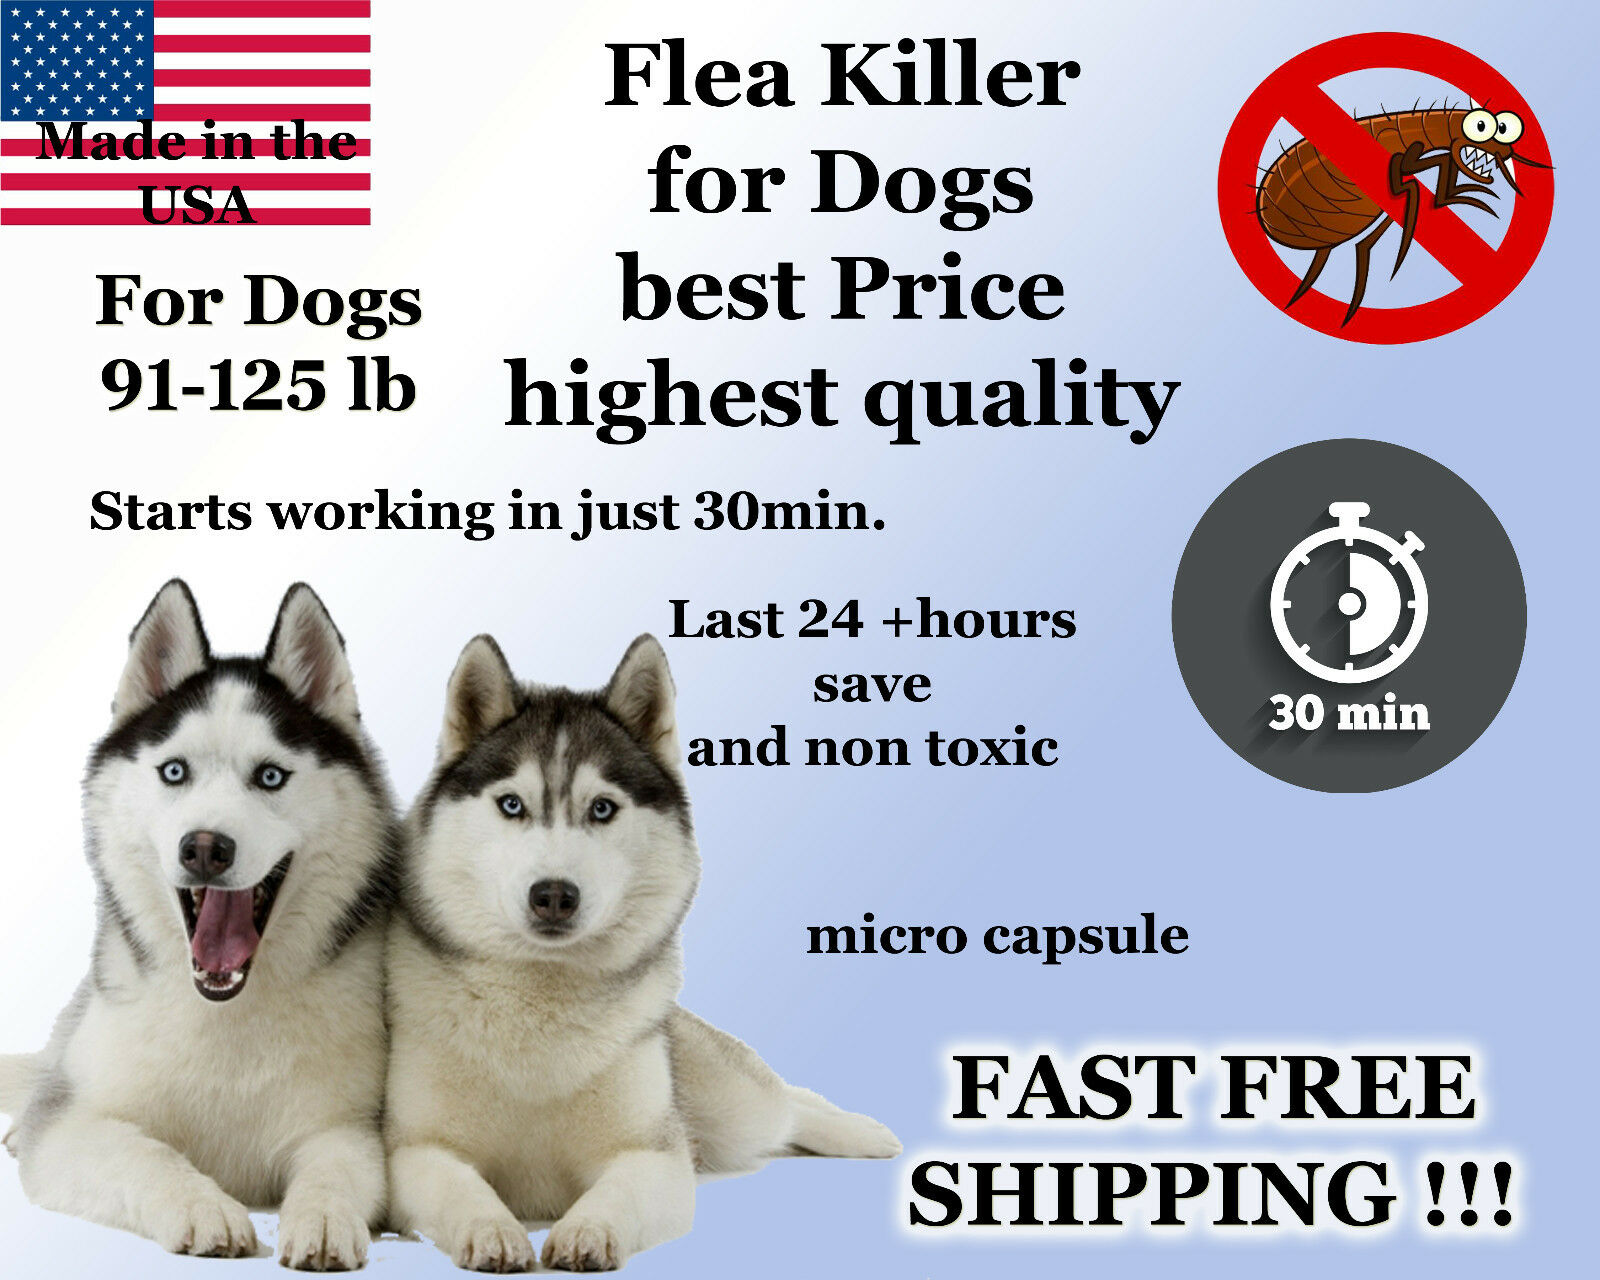 100 Capsules Instant Flea Killer Control Large Dogs 81-125lb 74mg FAST RESULTS